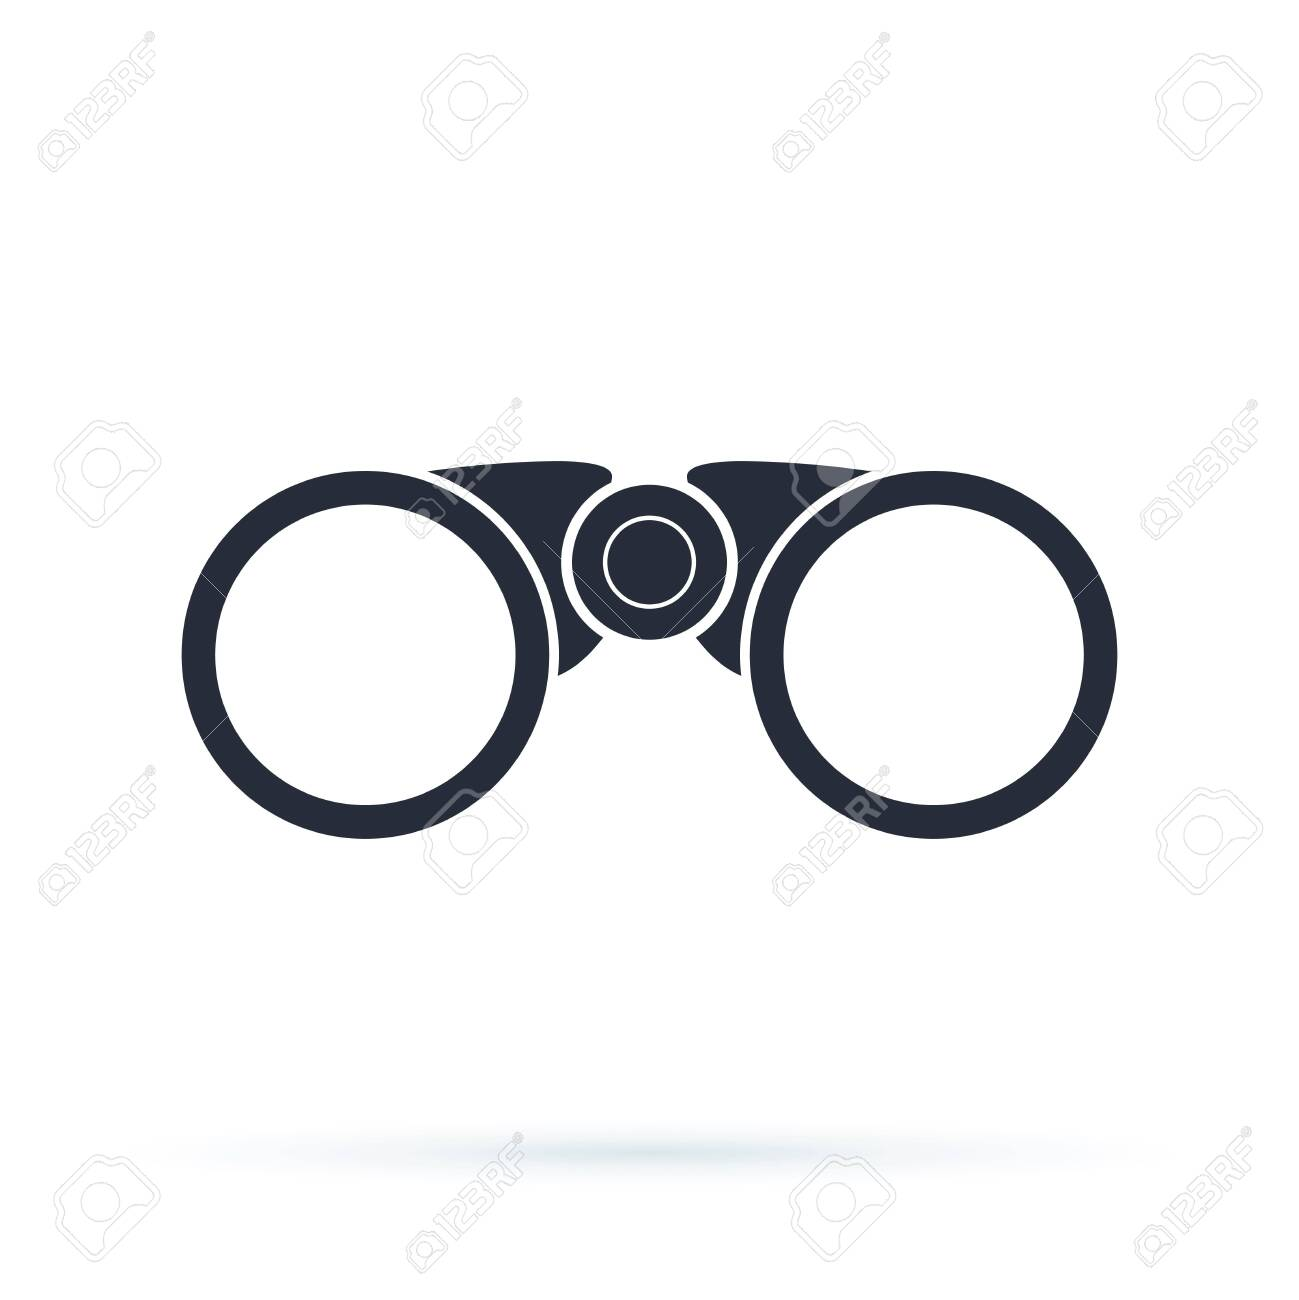 Binoculars icon on white background. Binocular field glasses flat vector icon for apps and websites. Exploration, discovery, optical equipment. Navigation concept. Can be used for travel, navigation - 123990191